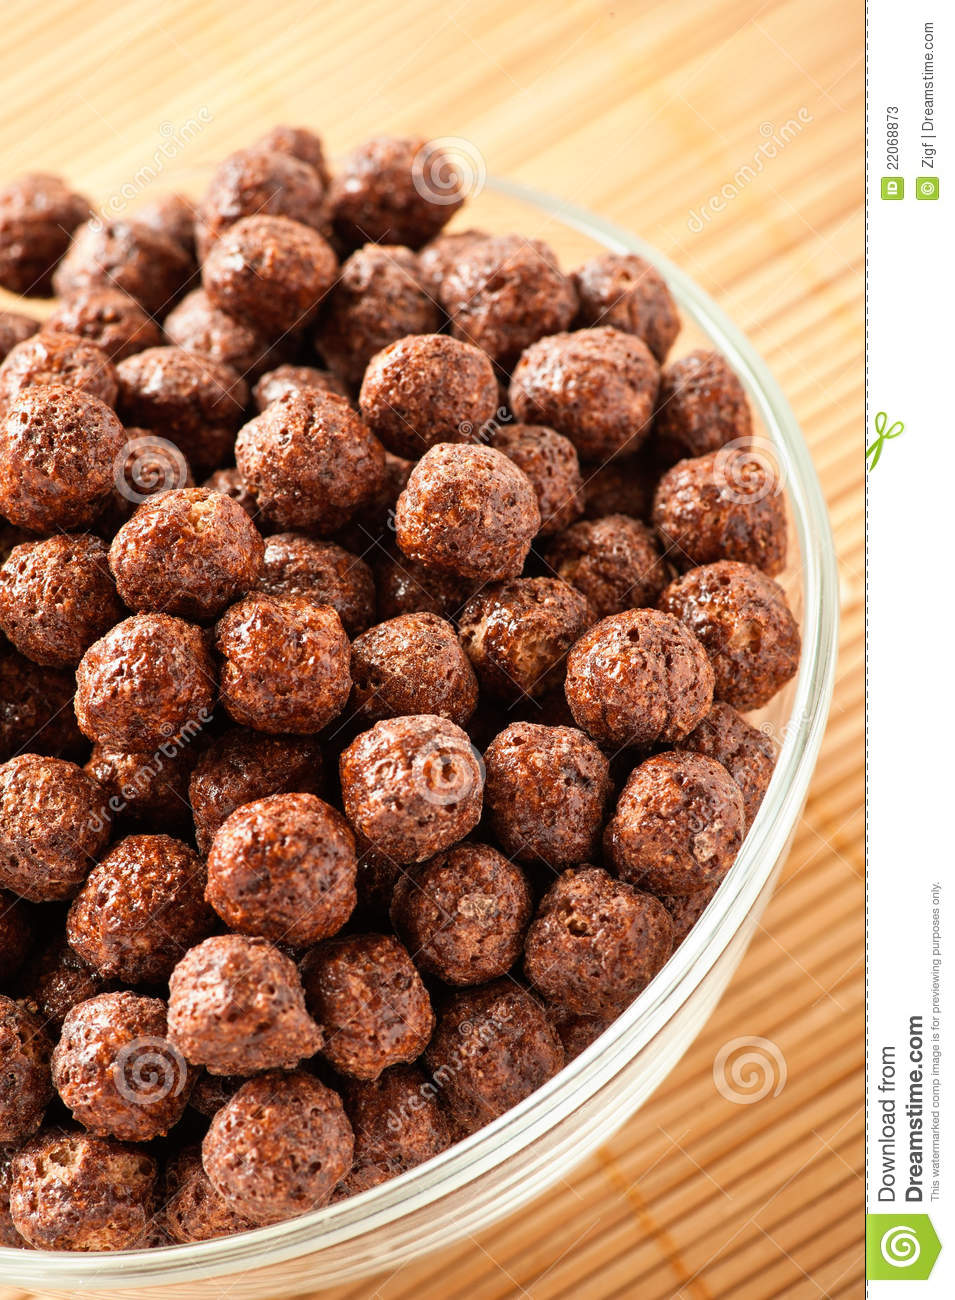 Crunchy Chocolate Balls Stock Photos.